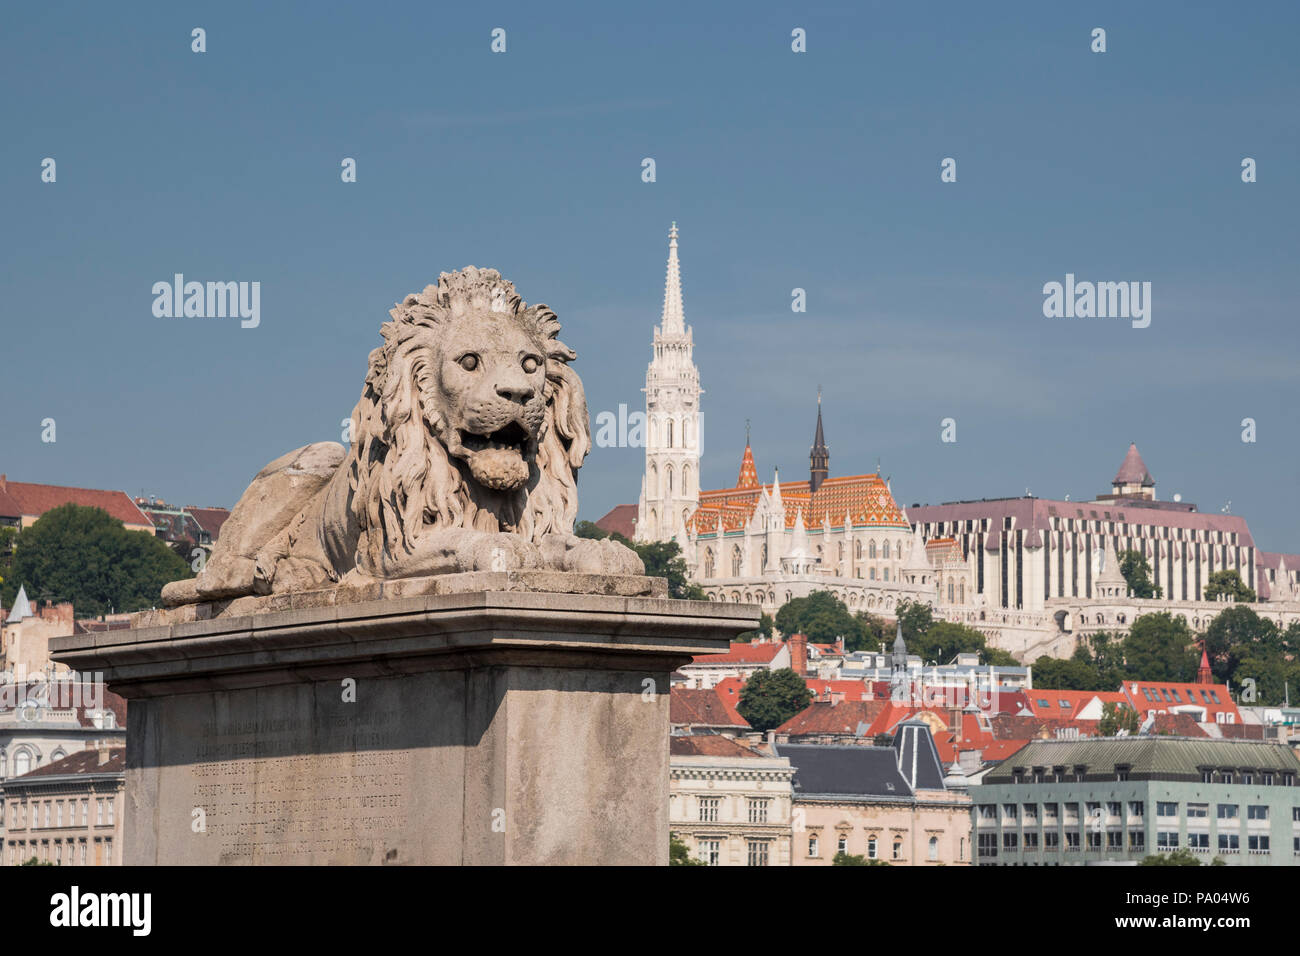 Lion sculpture on Chain Bridge with St Matthias Church and Fisherman's Bastion in background, Budapest, Hungary Stock Photo